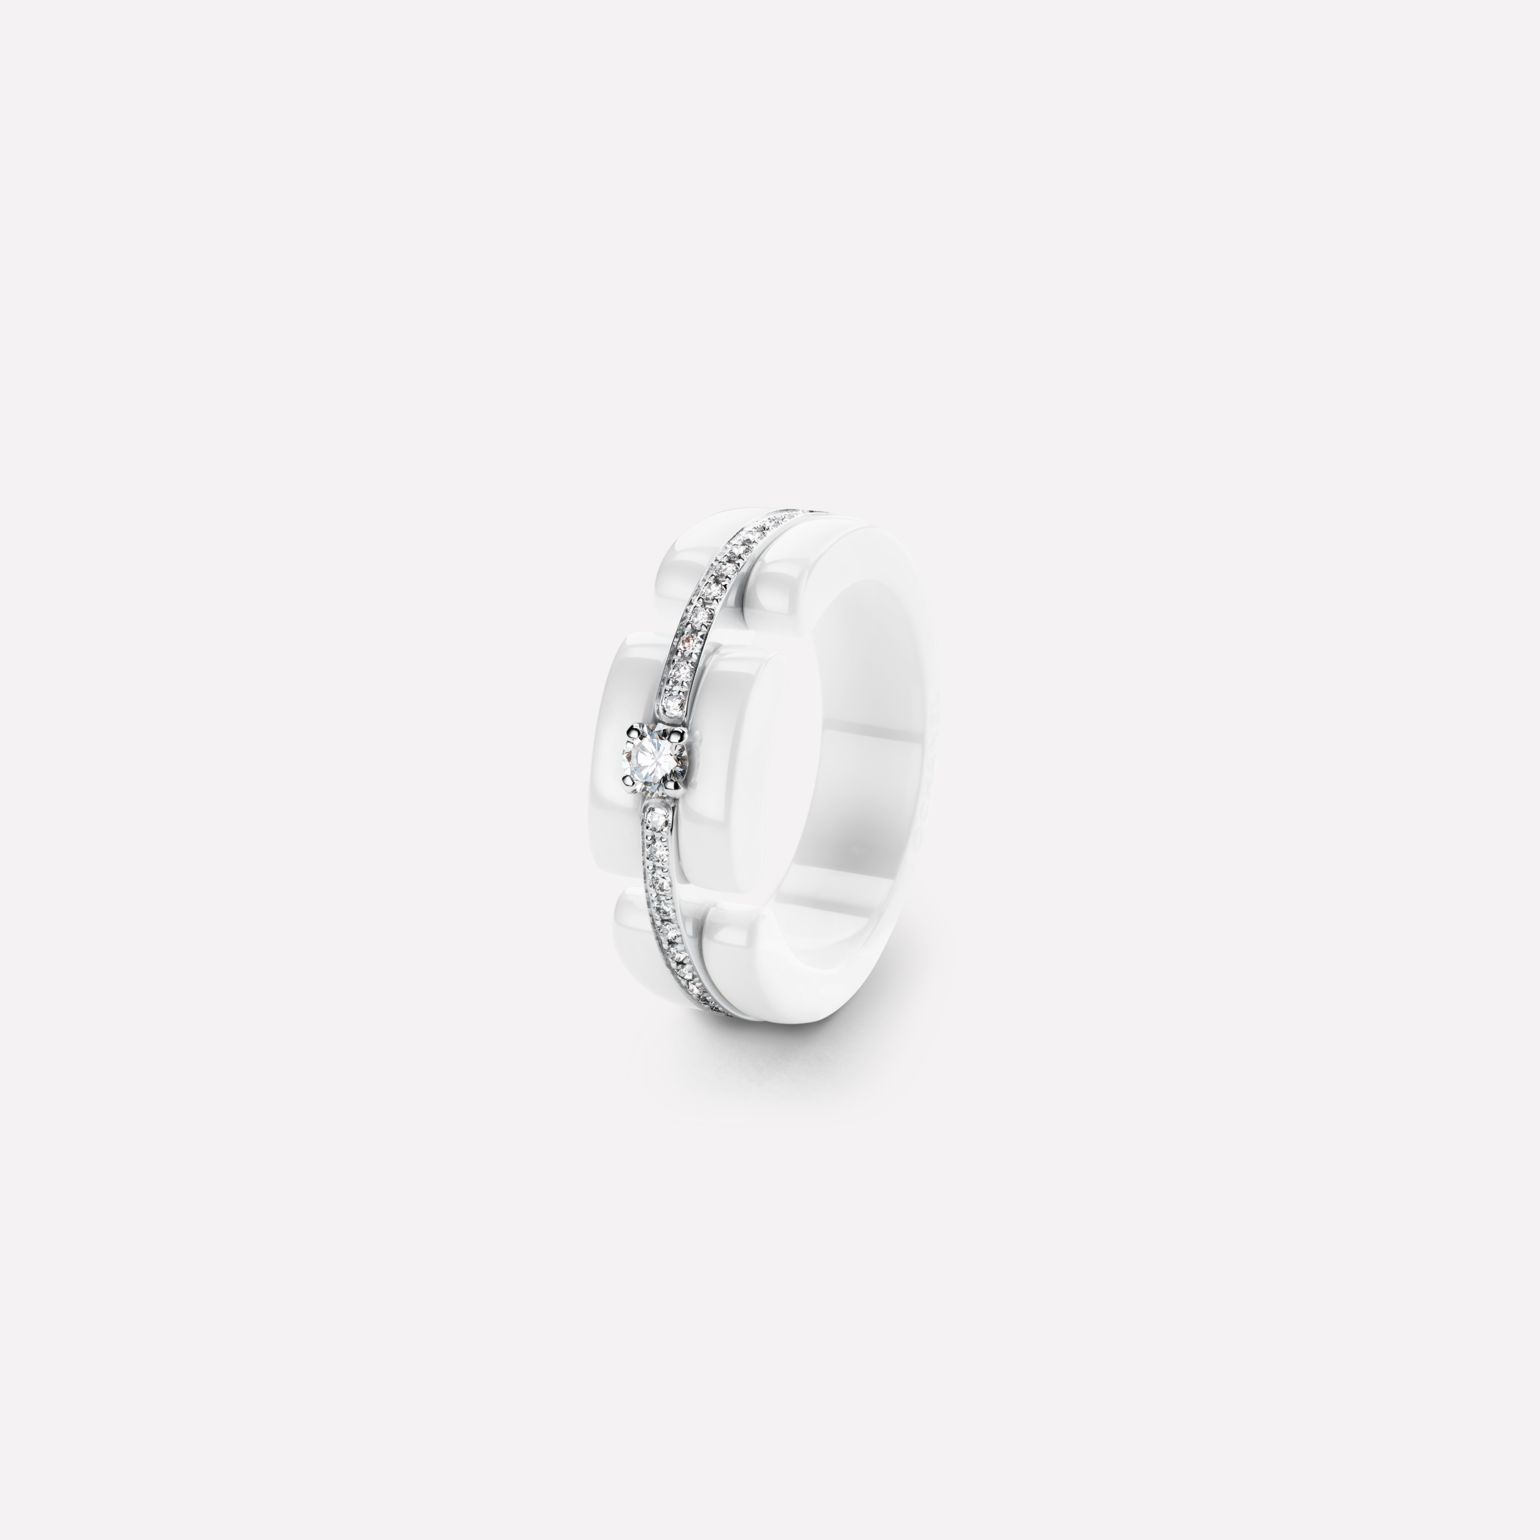 Ultra Ring Ultra ring in white ceramic, 18K white gold, diamonds and central diamond. Medium, rigid version.